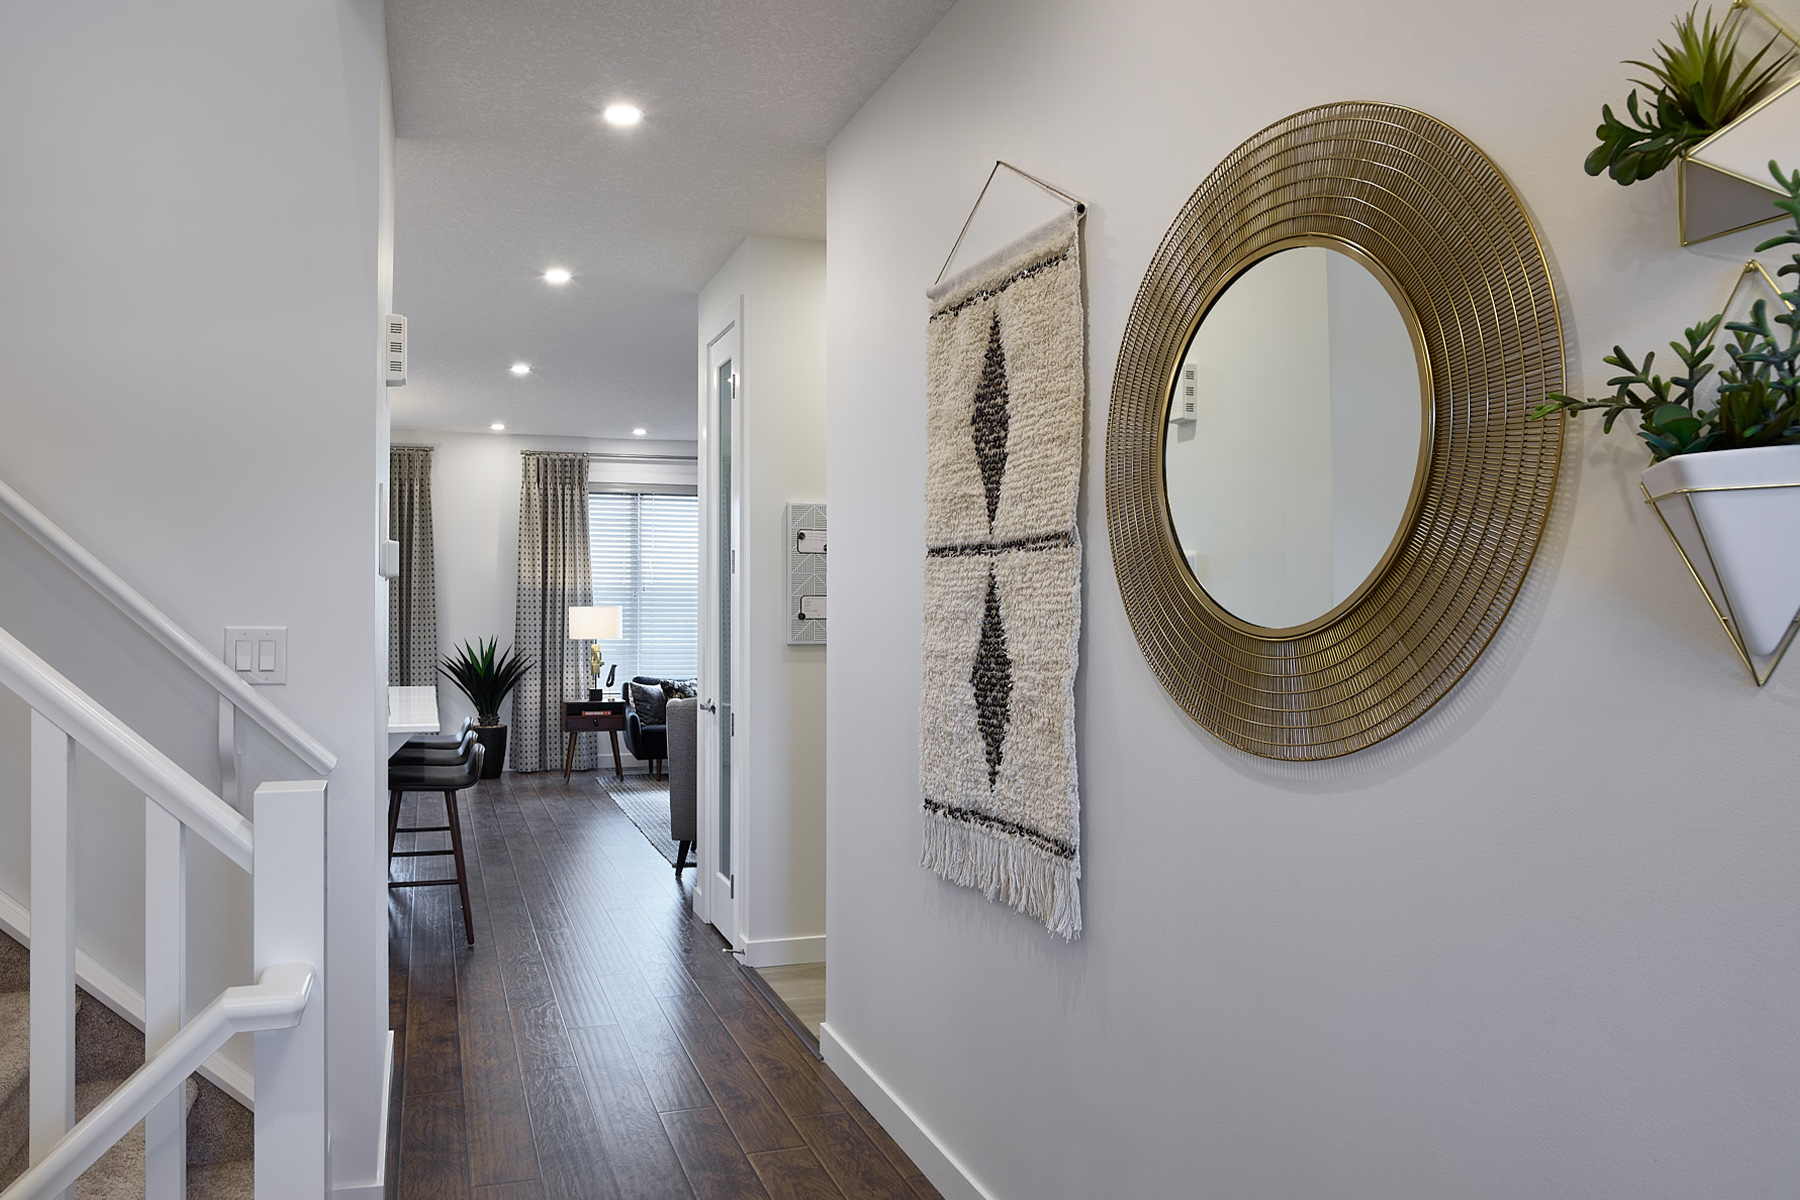 Hudson Plan Hallway at Carrington in Calgary Alberta by Mattamy Homes